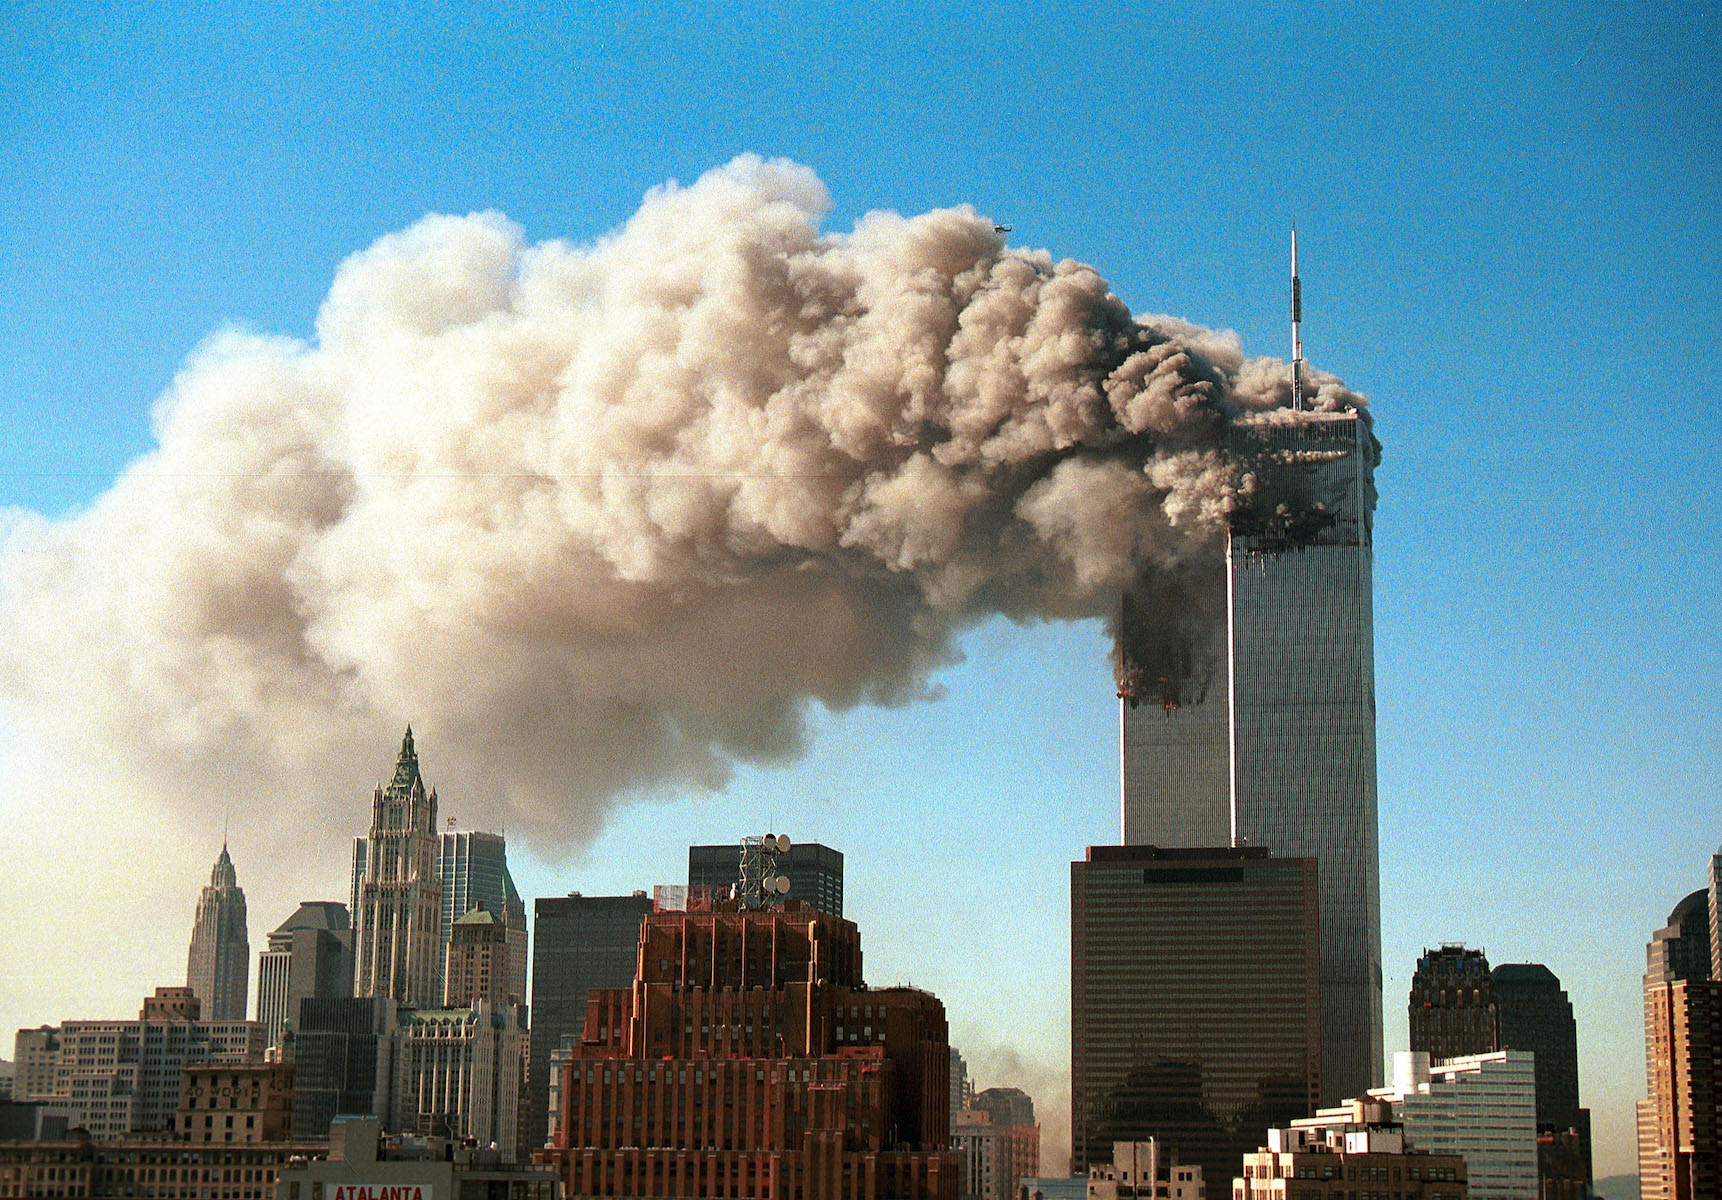 9/11 Mastermind Khalid Sheikh Mohammed to Face Death Penalty Trial in 2021: Report